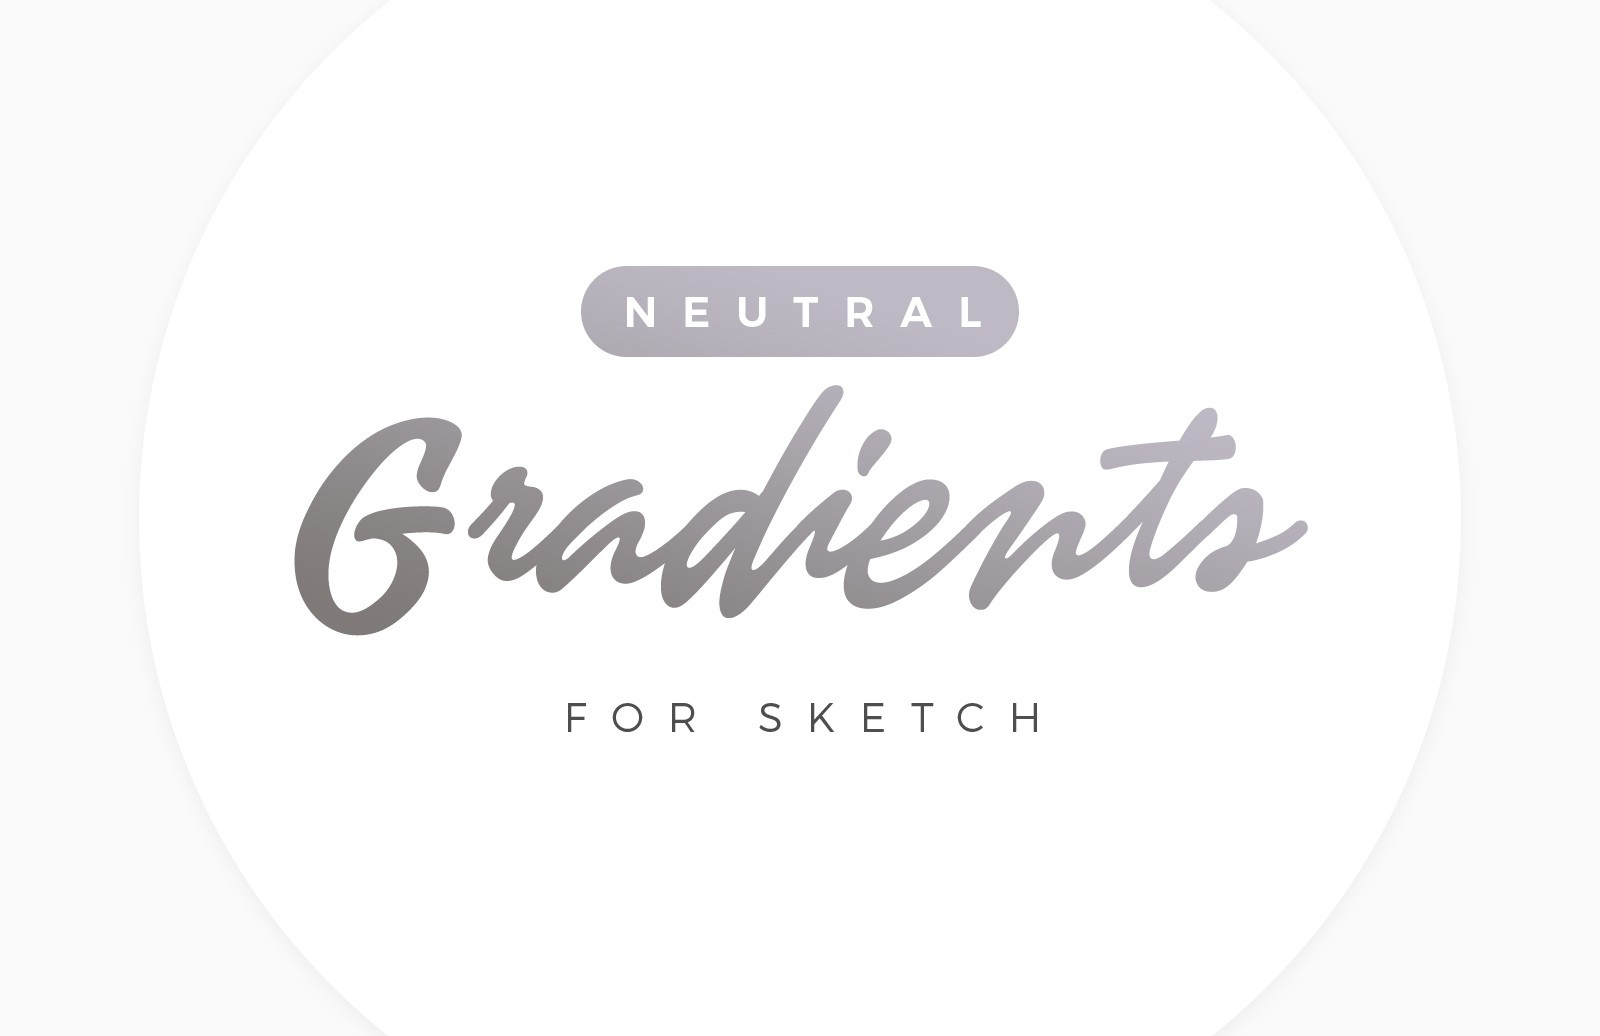 Neutral Gradients For Sketch Preview 1